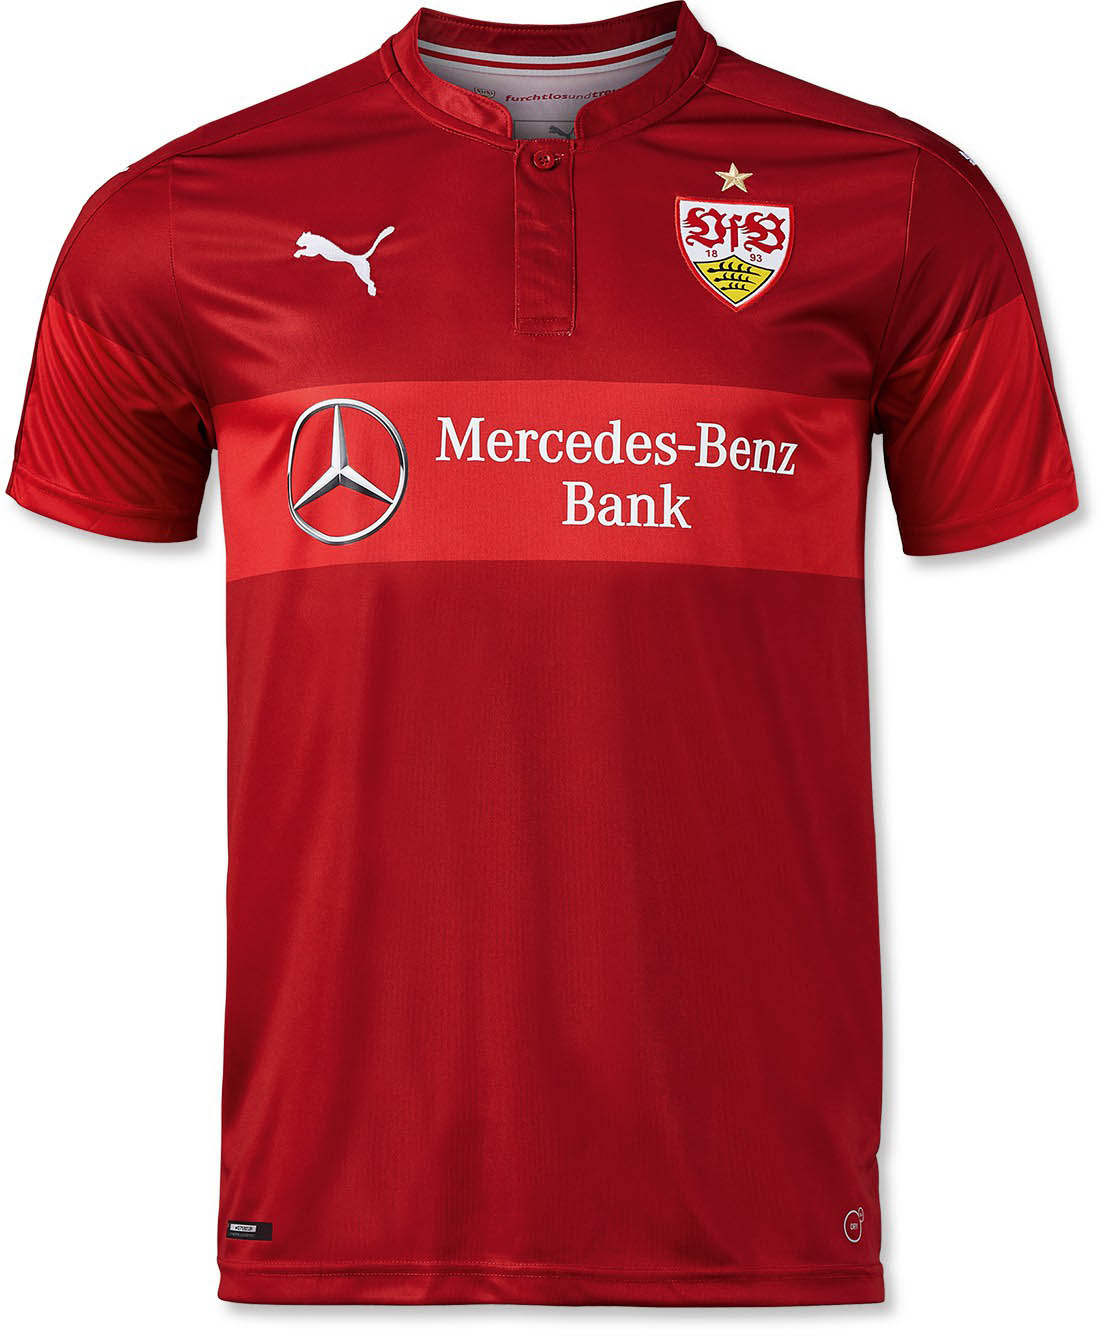 Vfb stuttgart 16 17 away and third kits released footy for Germany mercedes benz soccer jersey